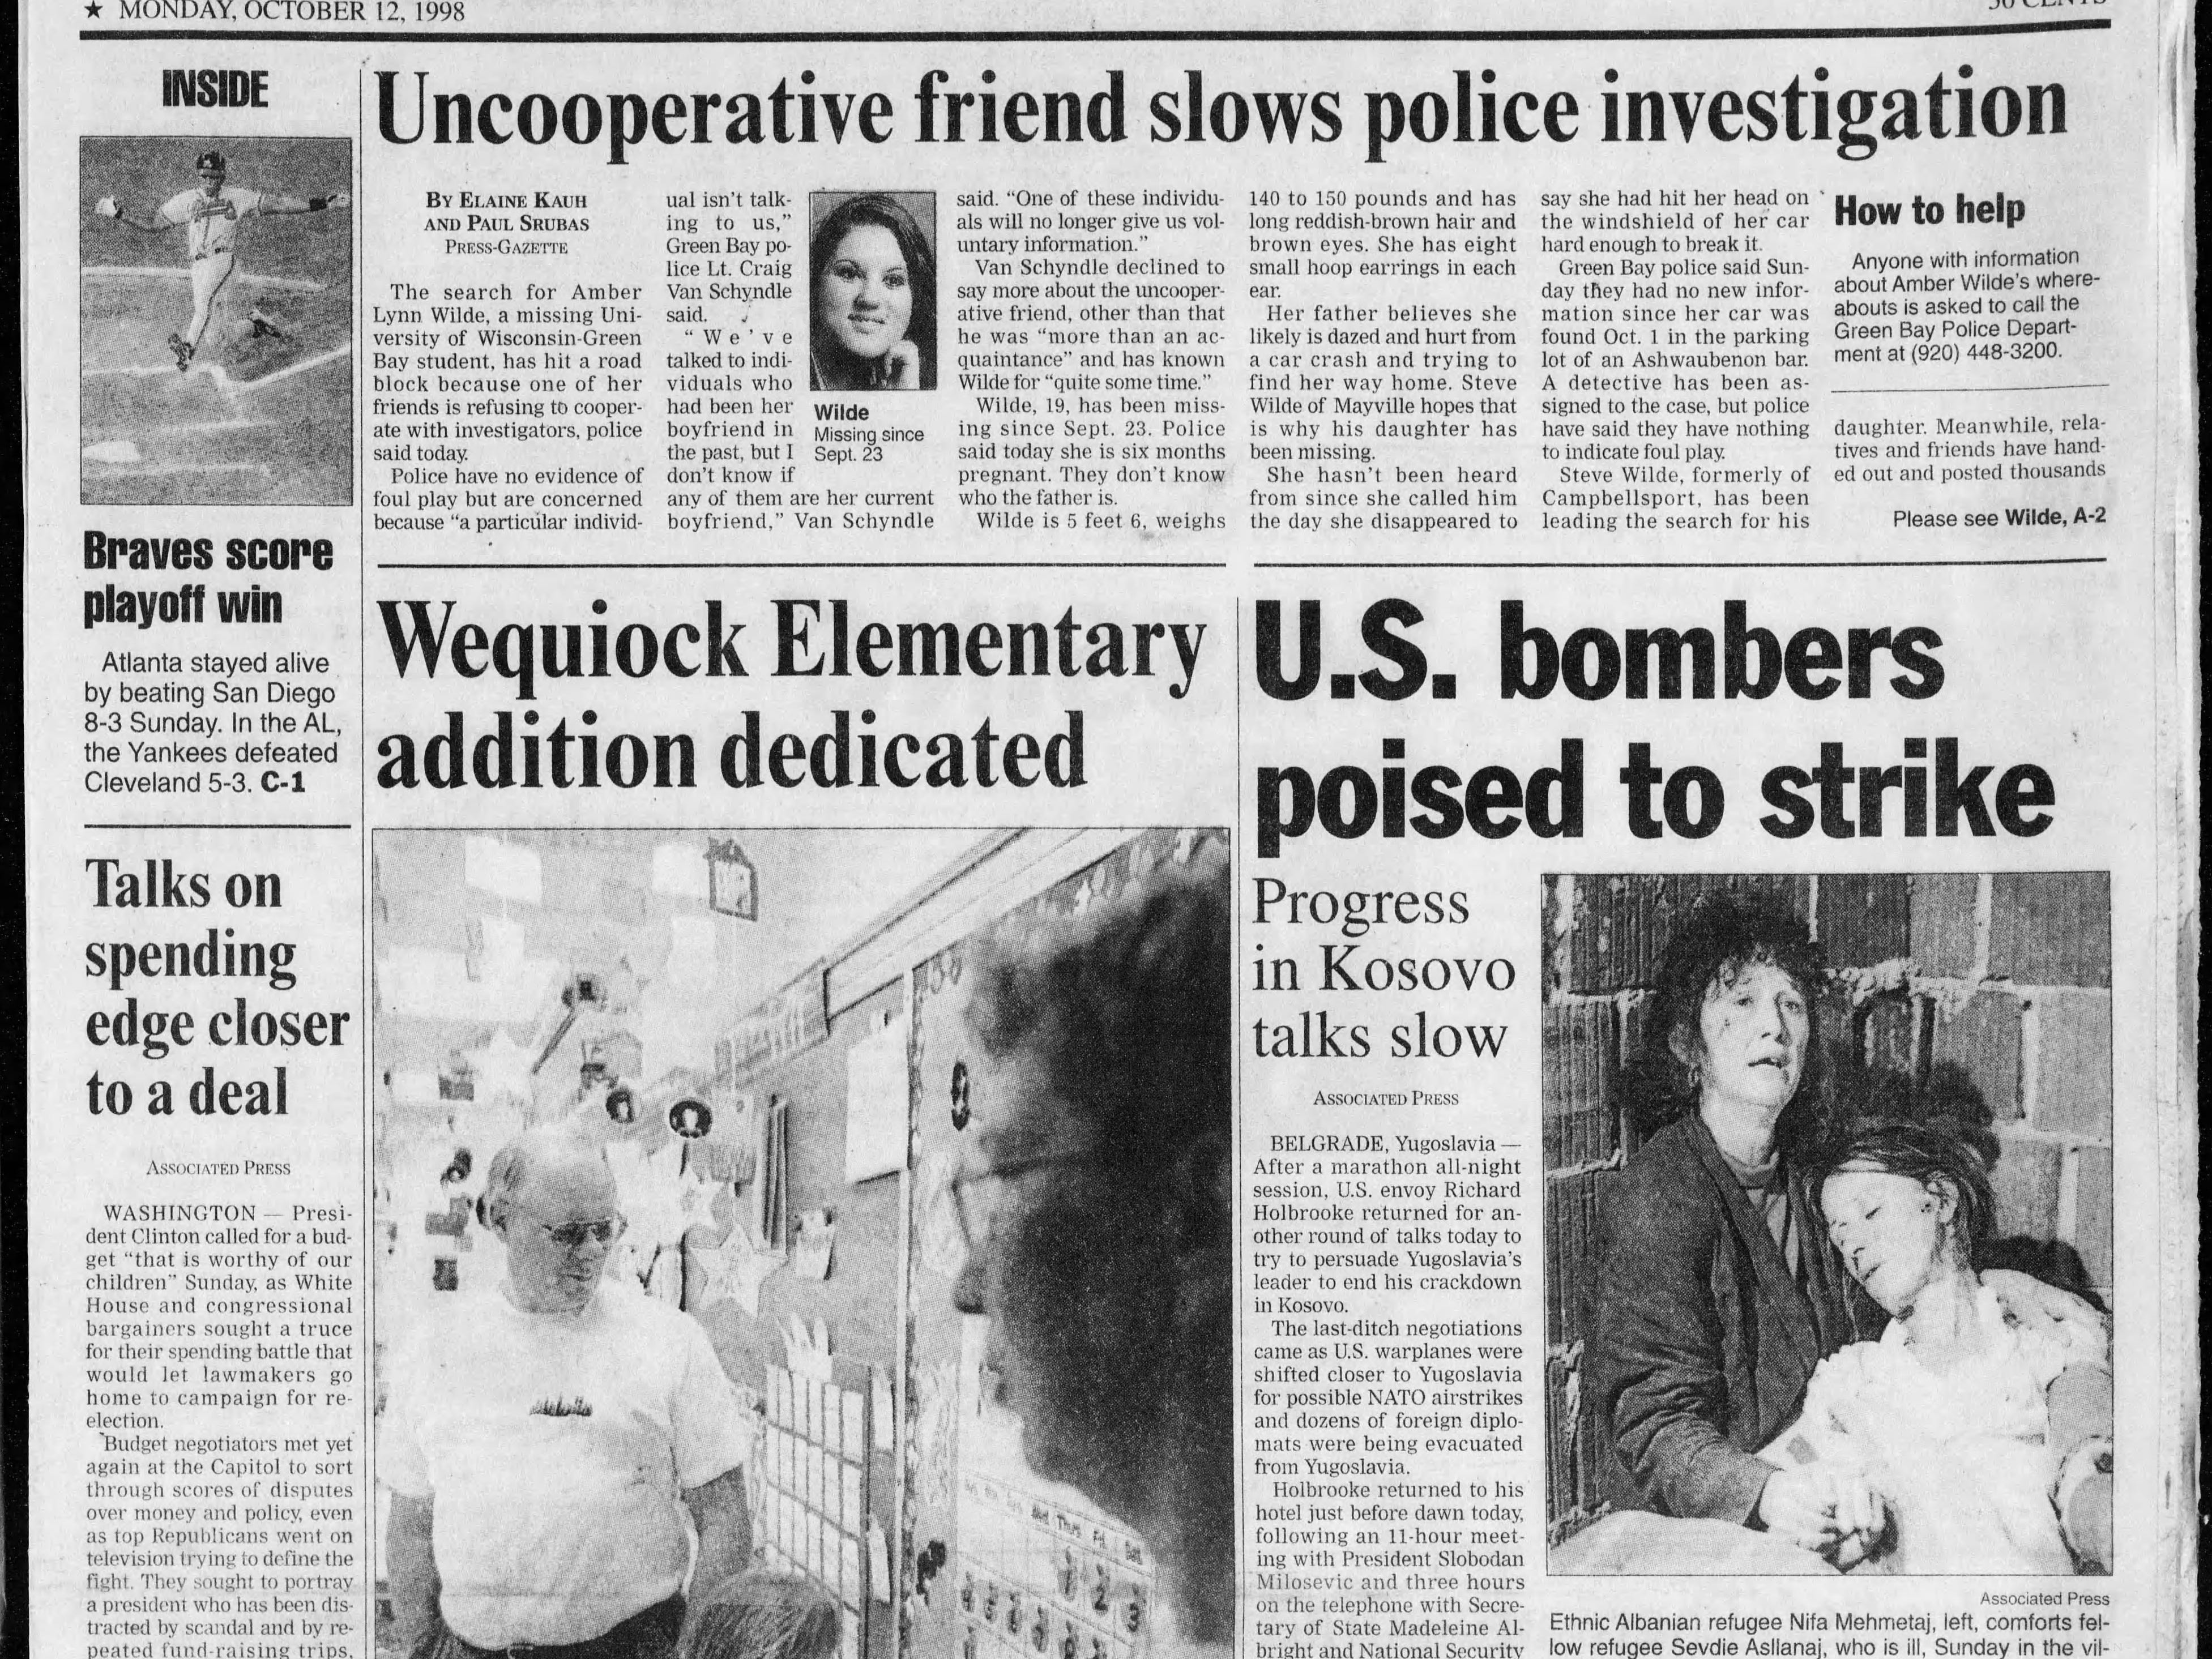 Today in History: Oct. 12, 1998